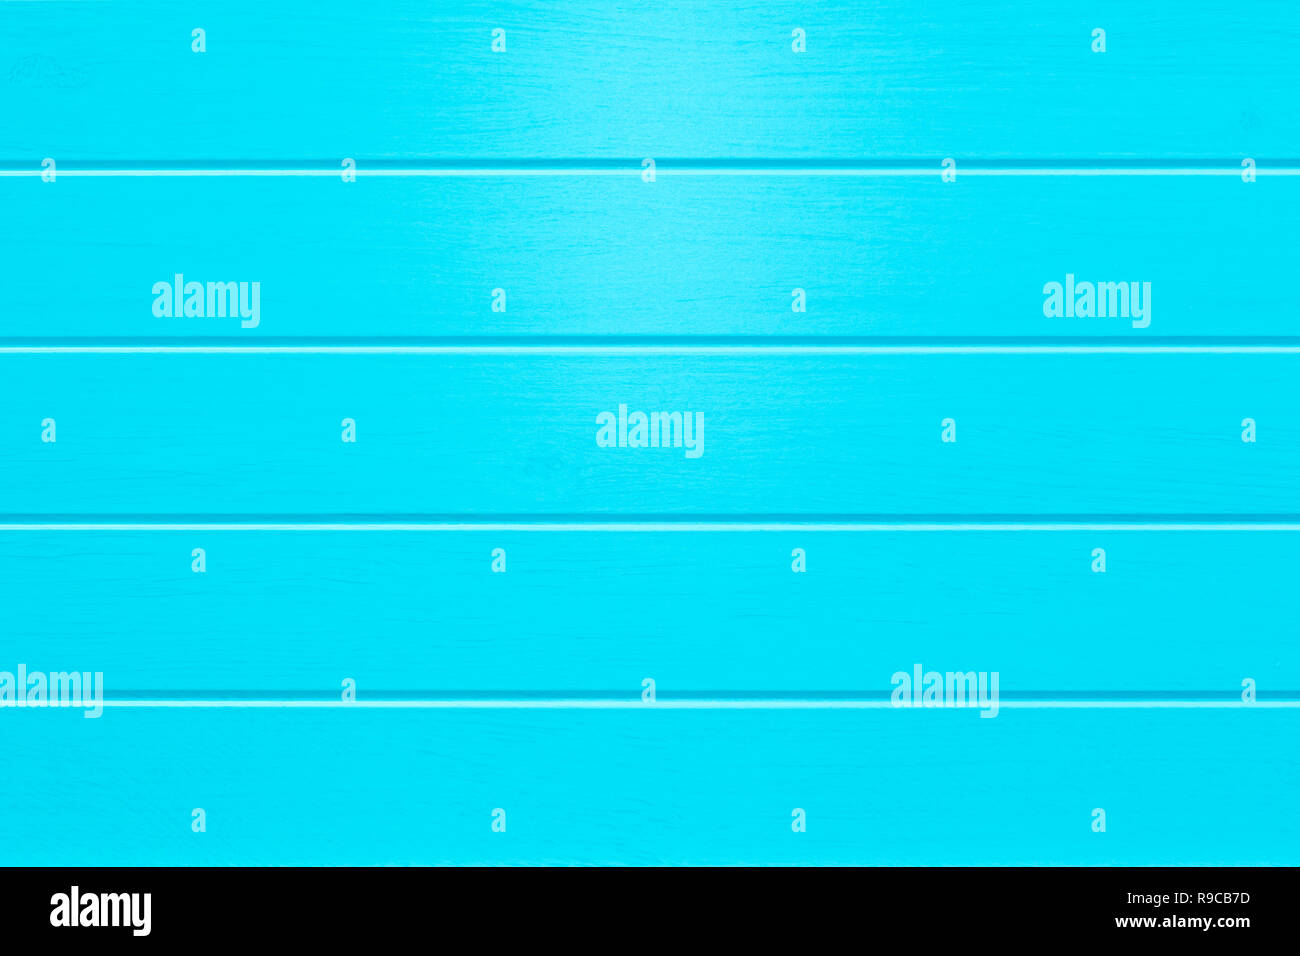 Empty Blue colored horizontal wooden planks background - Stock Image